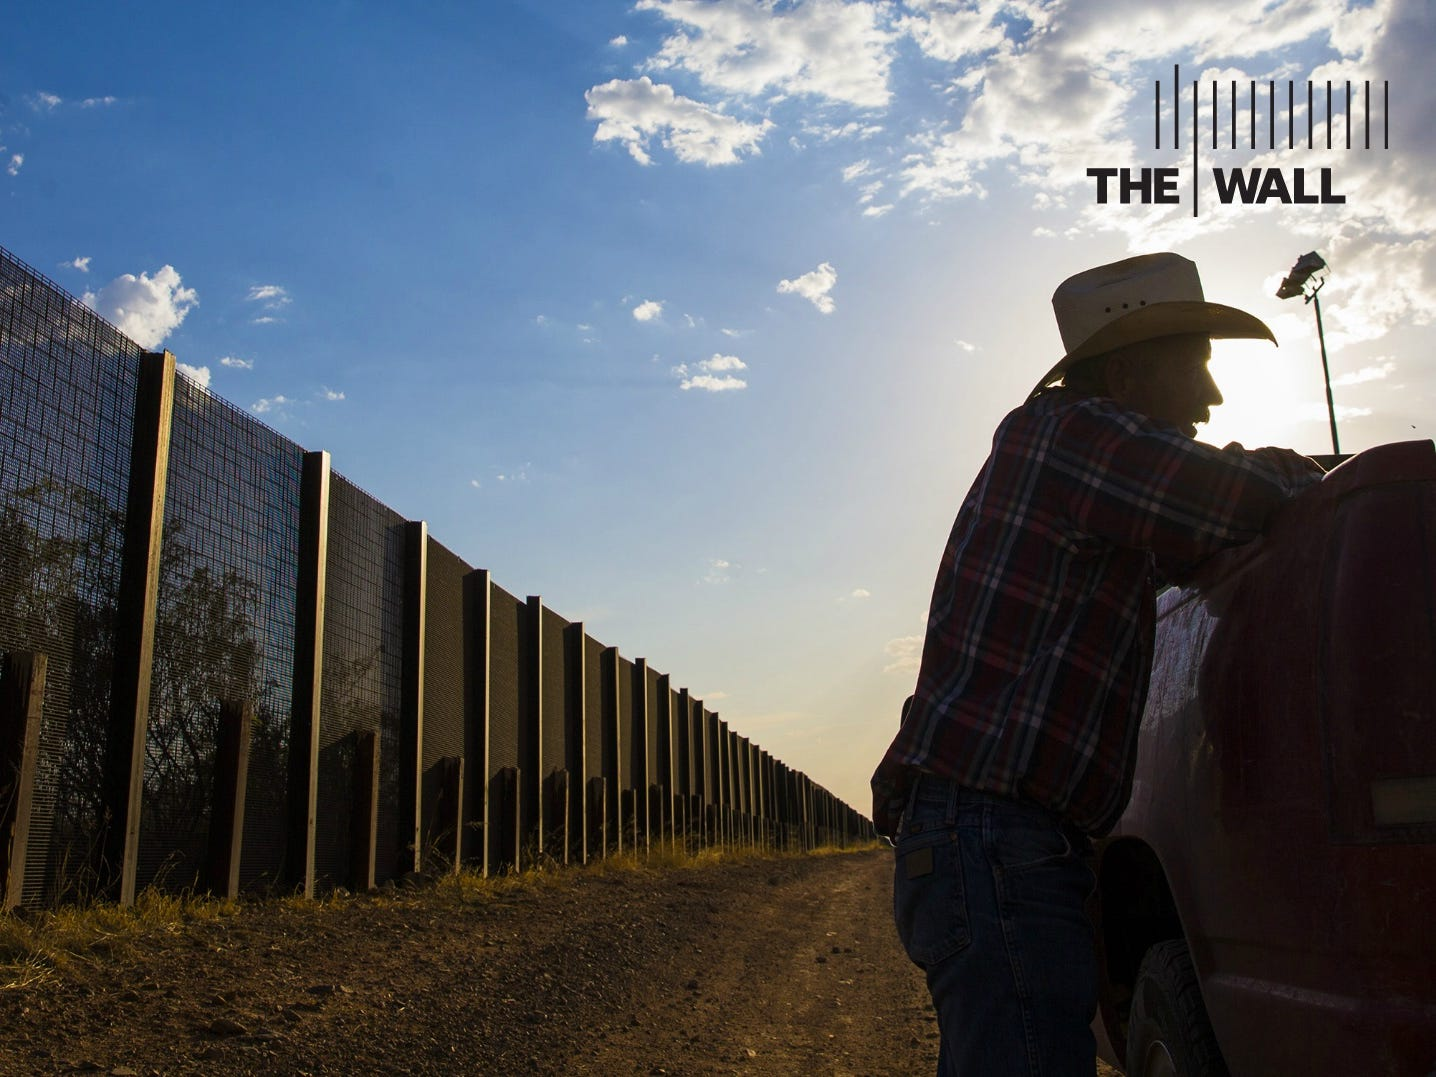 Enter for tickets to the screening of The Wall with a panel discussion to follow led by Zahira Torres, El Paso Times Editor. Enter 7/12-7/29.